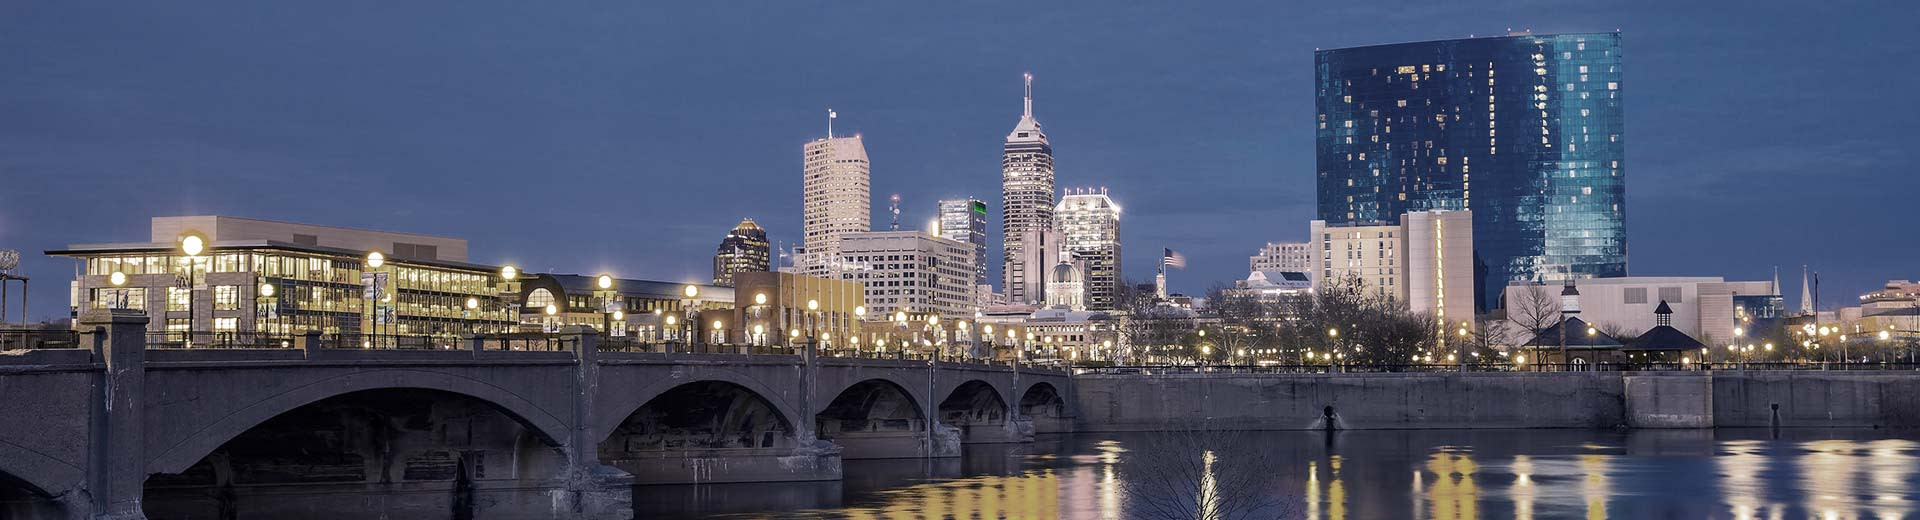 A bridge and skyscrapers lit up against the night sky in Indianapolis